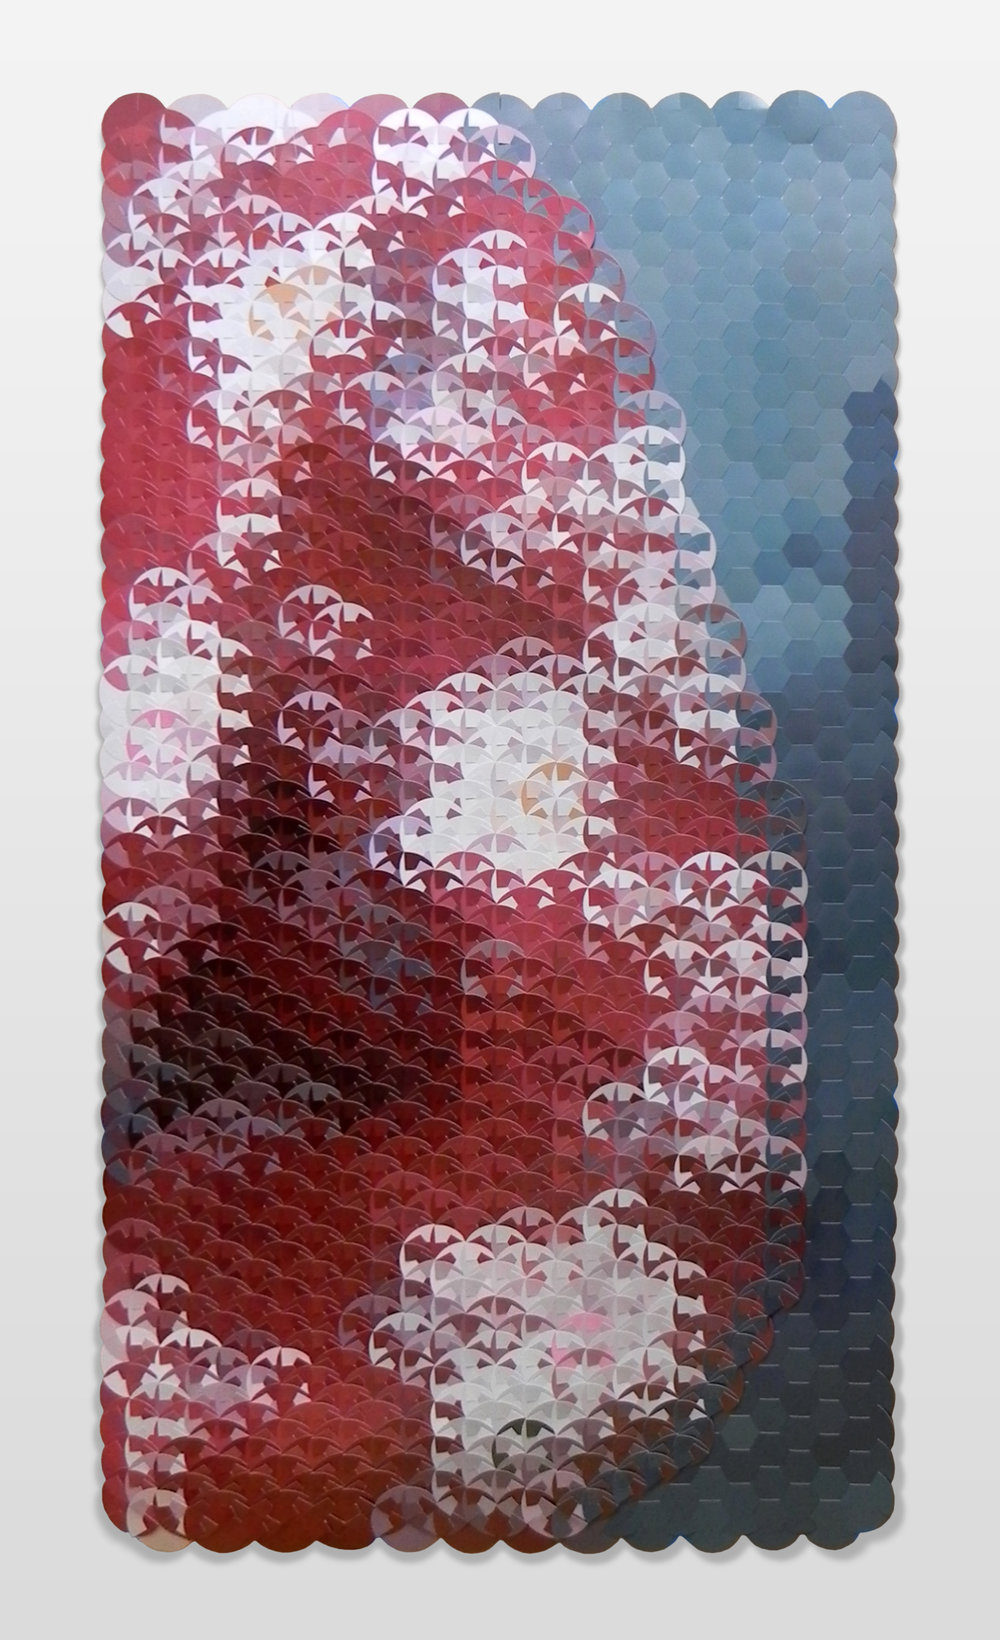 <b>Red Blouse with White Flowers </b><br>Archival Photographic Reconstruction<br> 55 x 30 in. (framed)